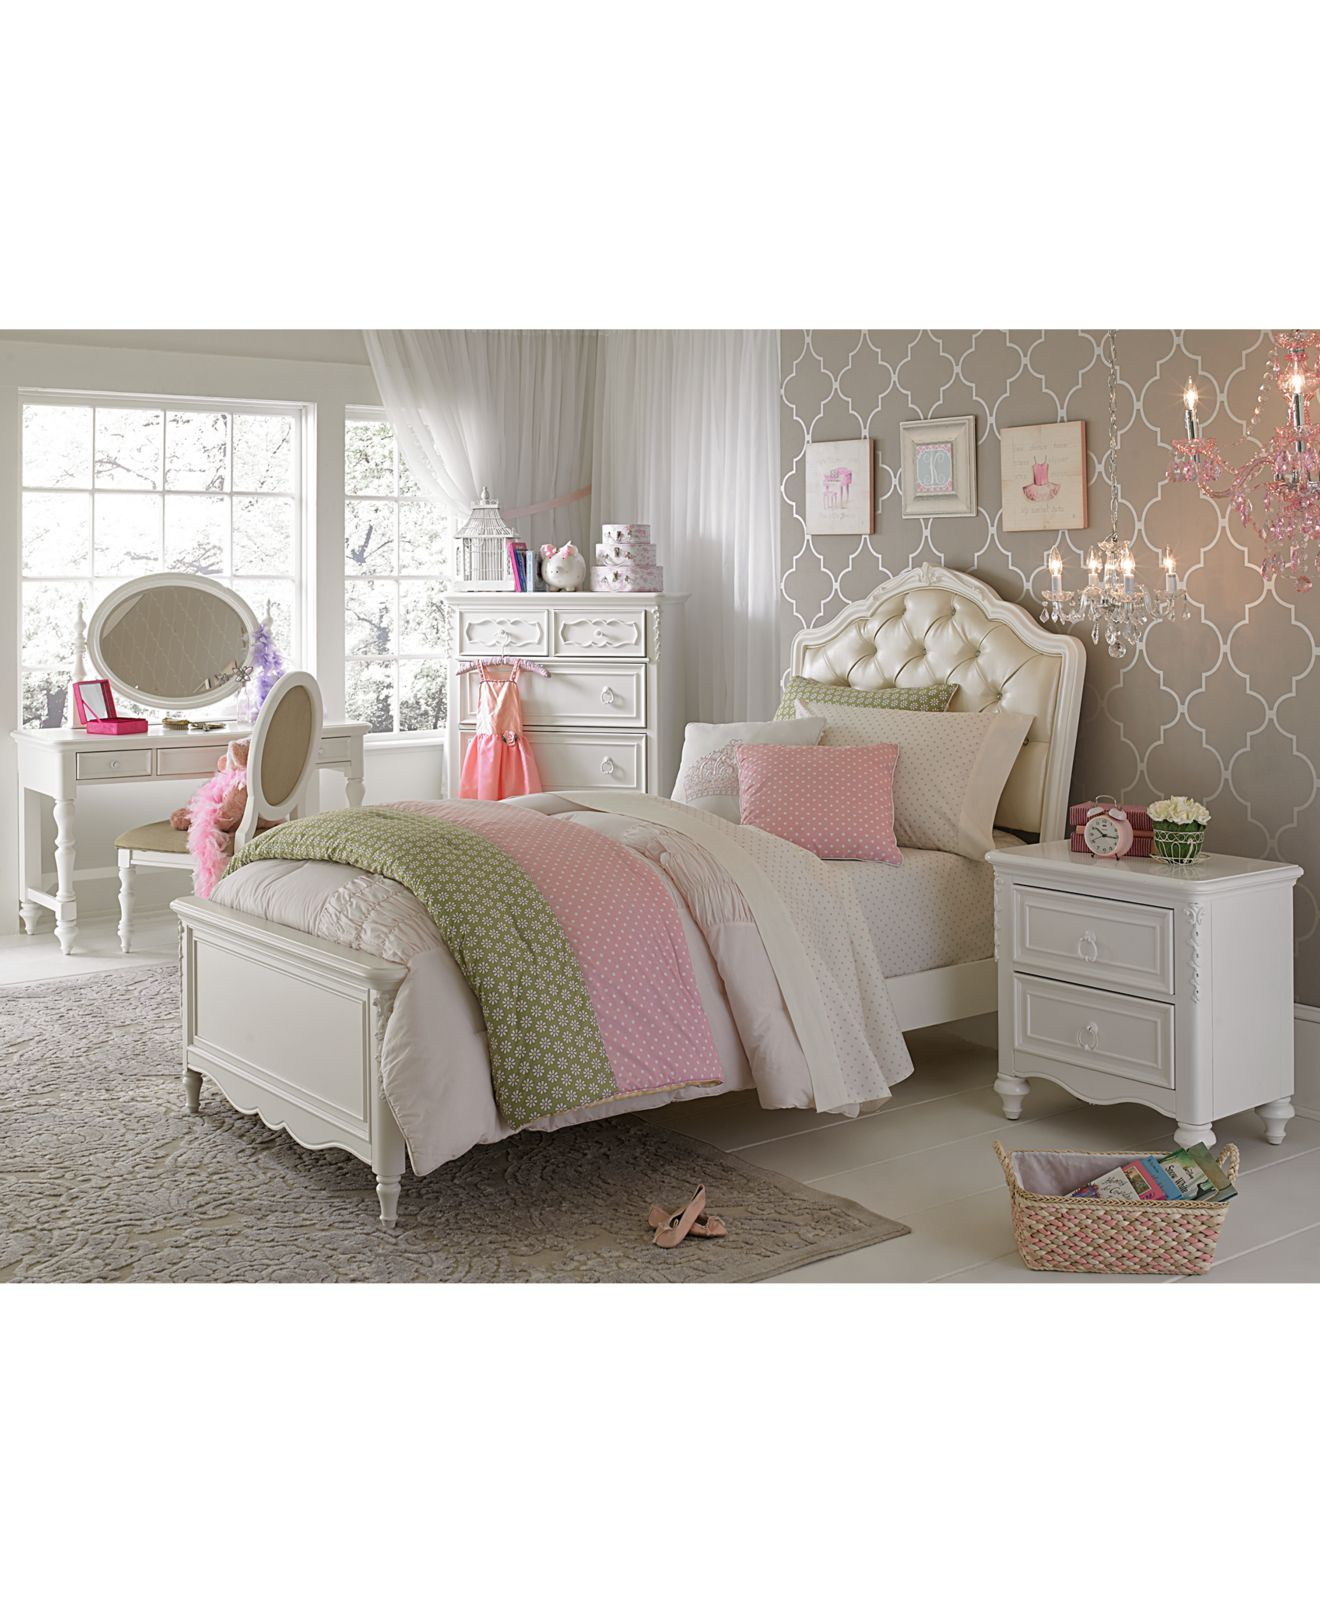 kids & baby nursery furniture - macy's